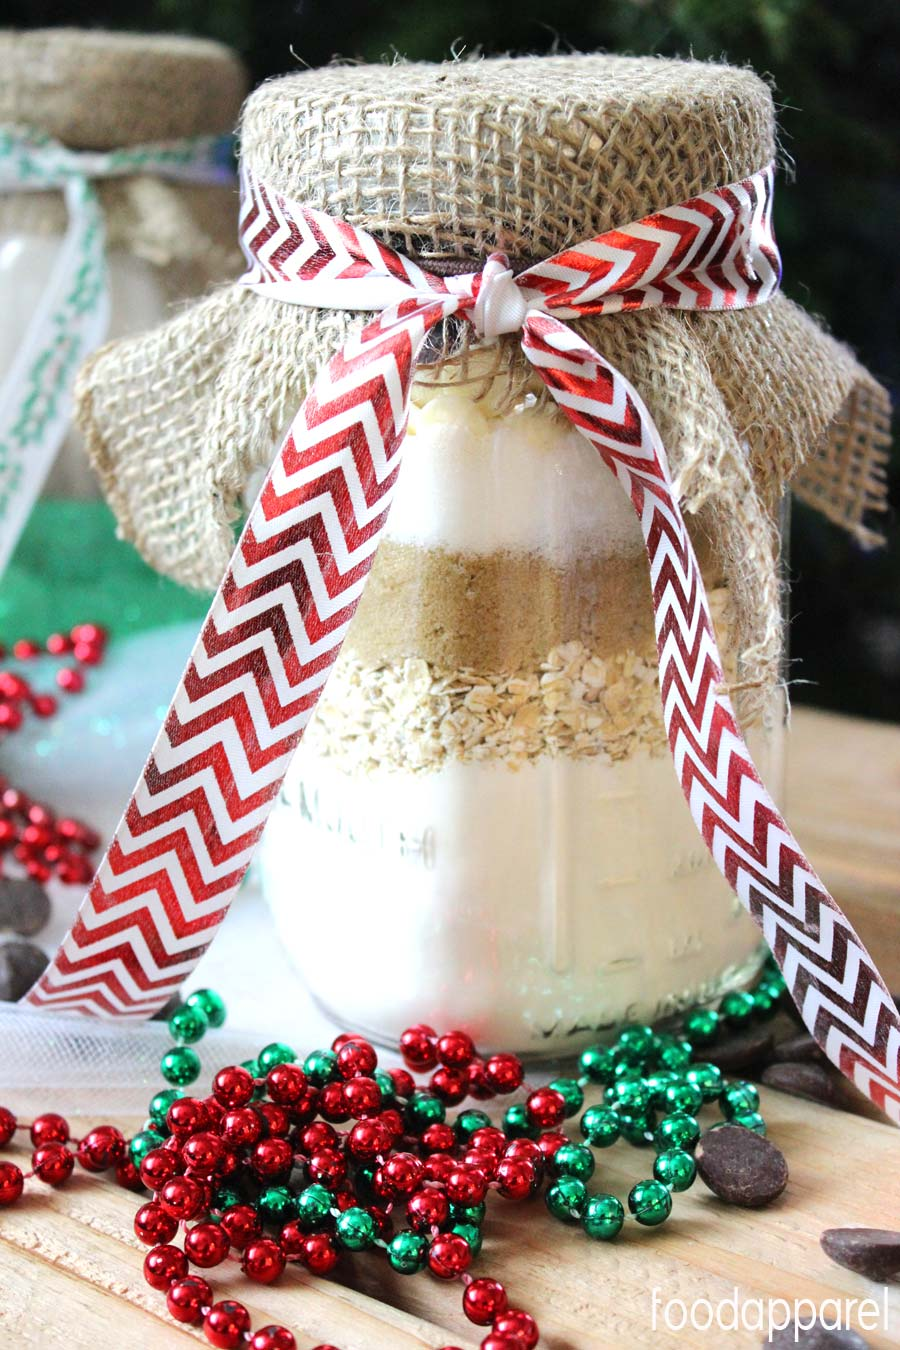 21 Homemade Edible Gift-In-A-Jar Recipes for the Holidays | Food Apparel